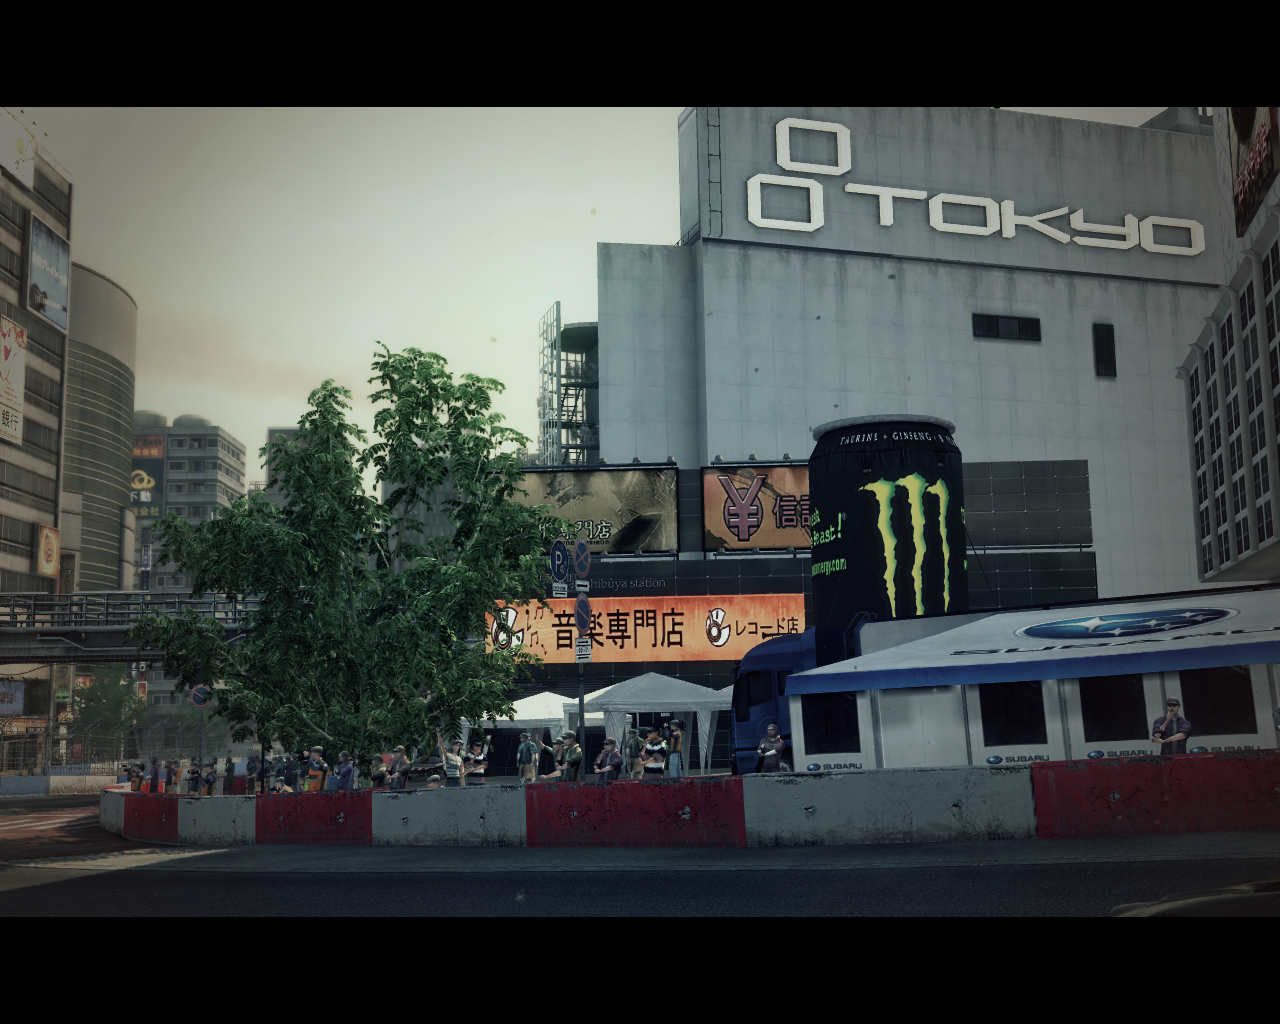 X Games Asia Track Pack Windows Shibuya views